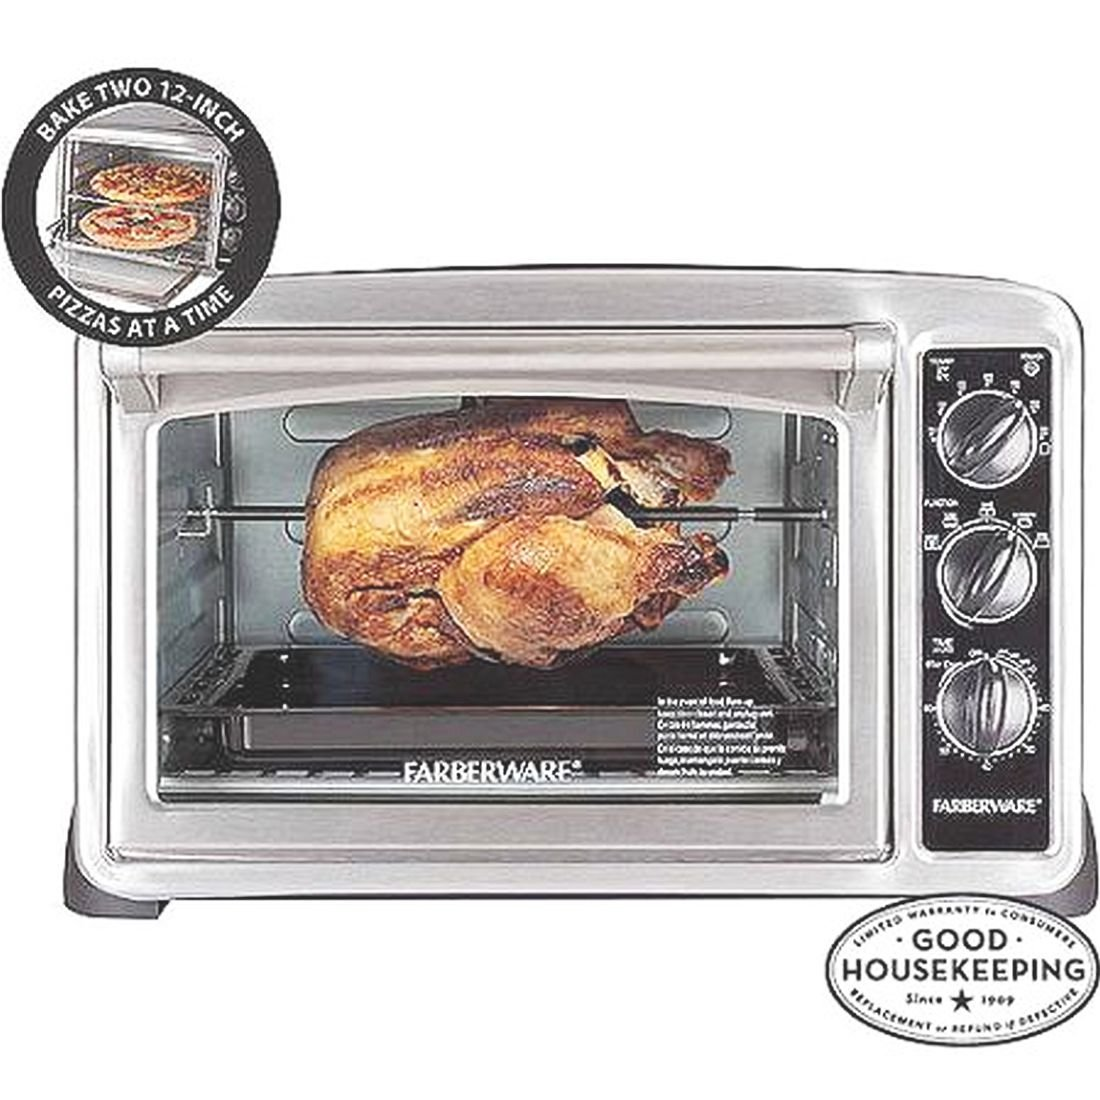 Amazon Farberware Convection CounterTop Oven